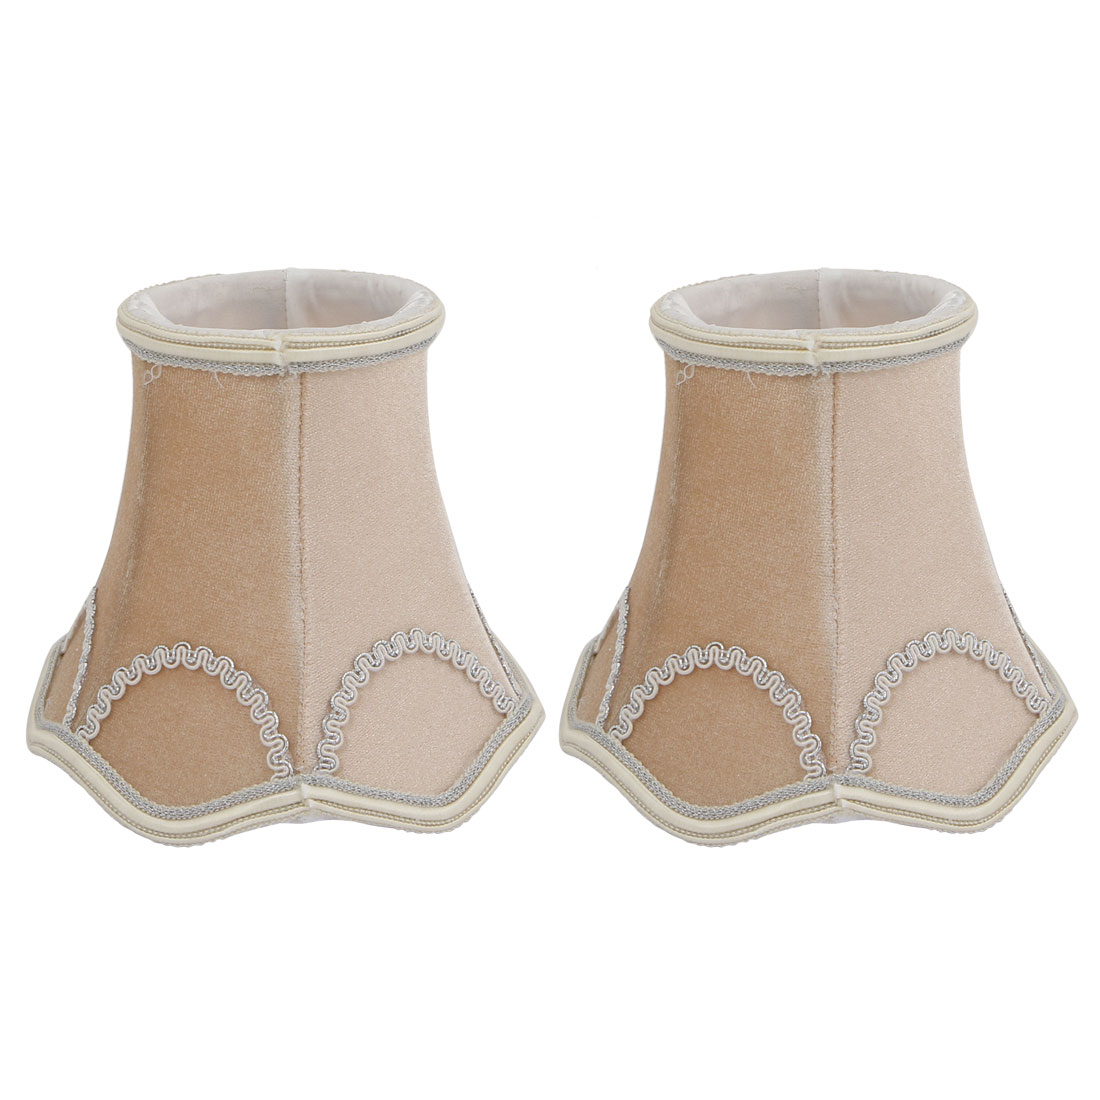 2pcs LightShade Small Bell Shape Chandelier Clip-On Lampshade Apricot by